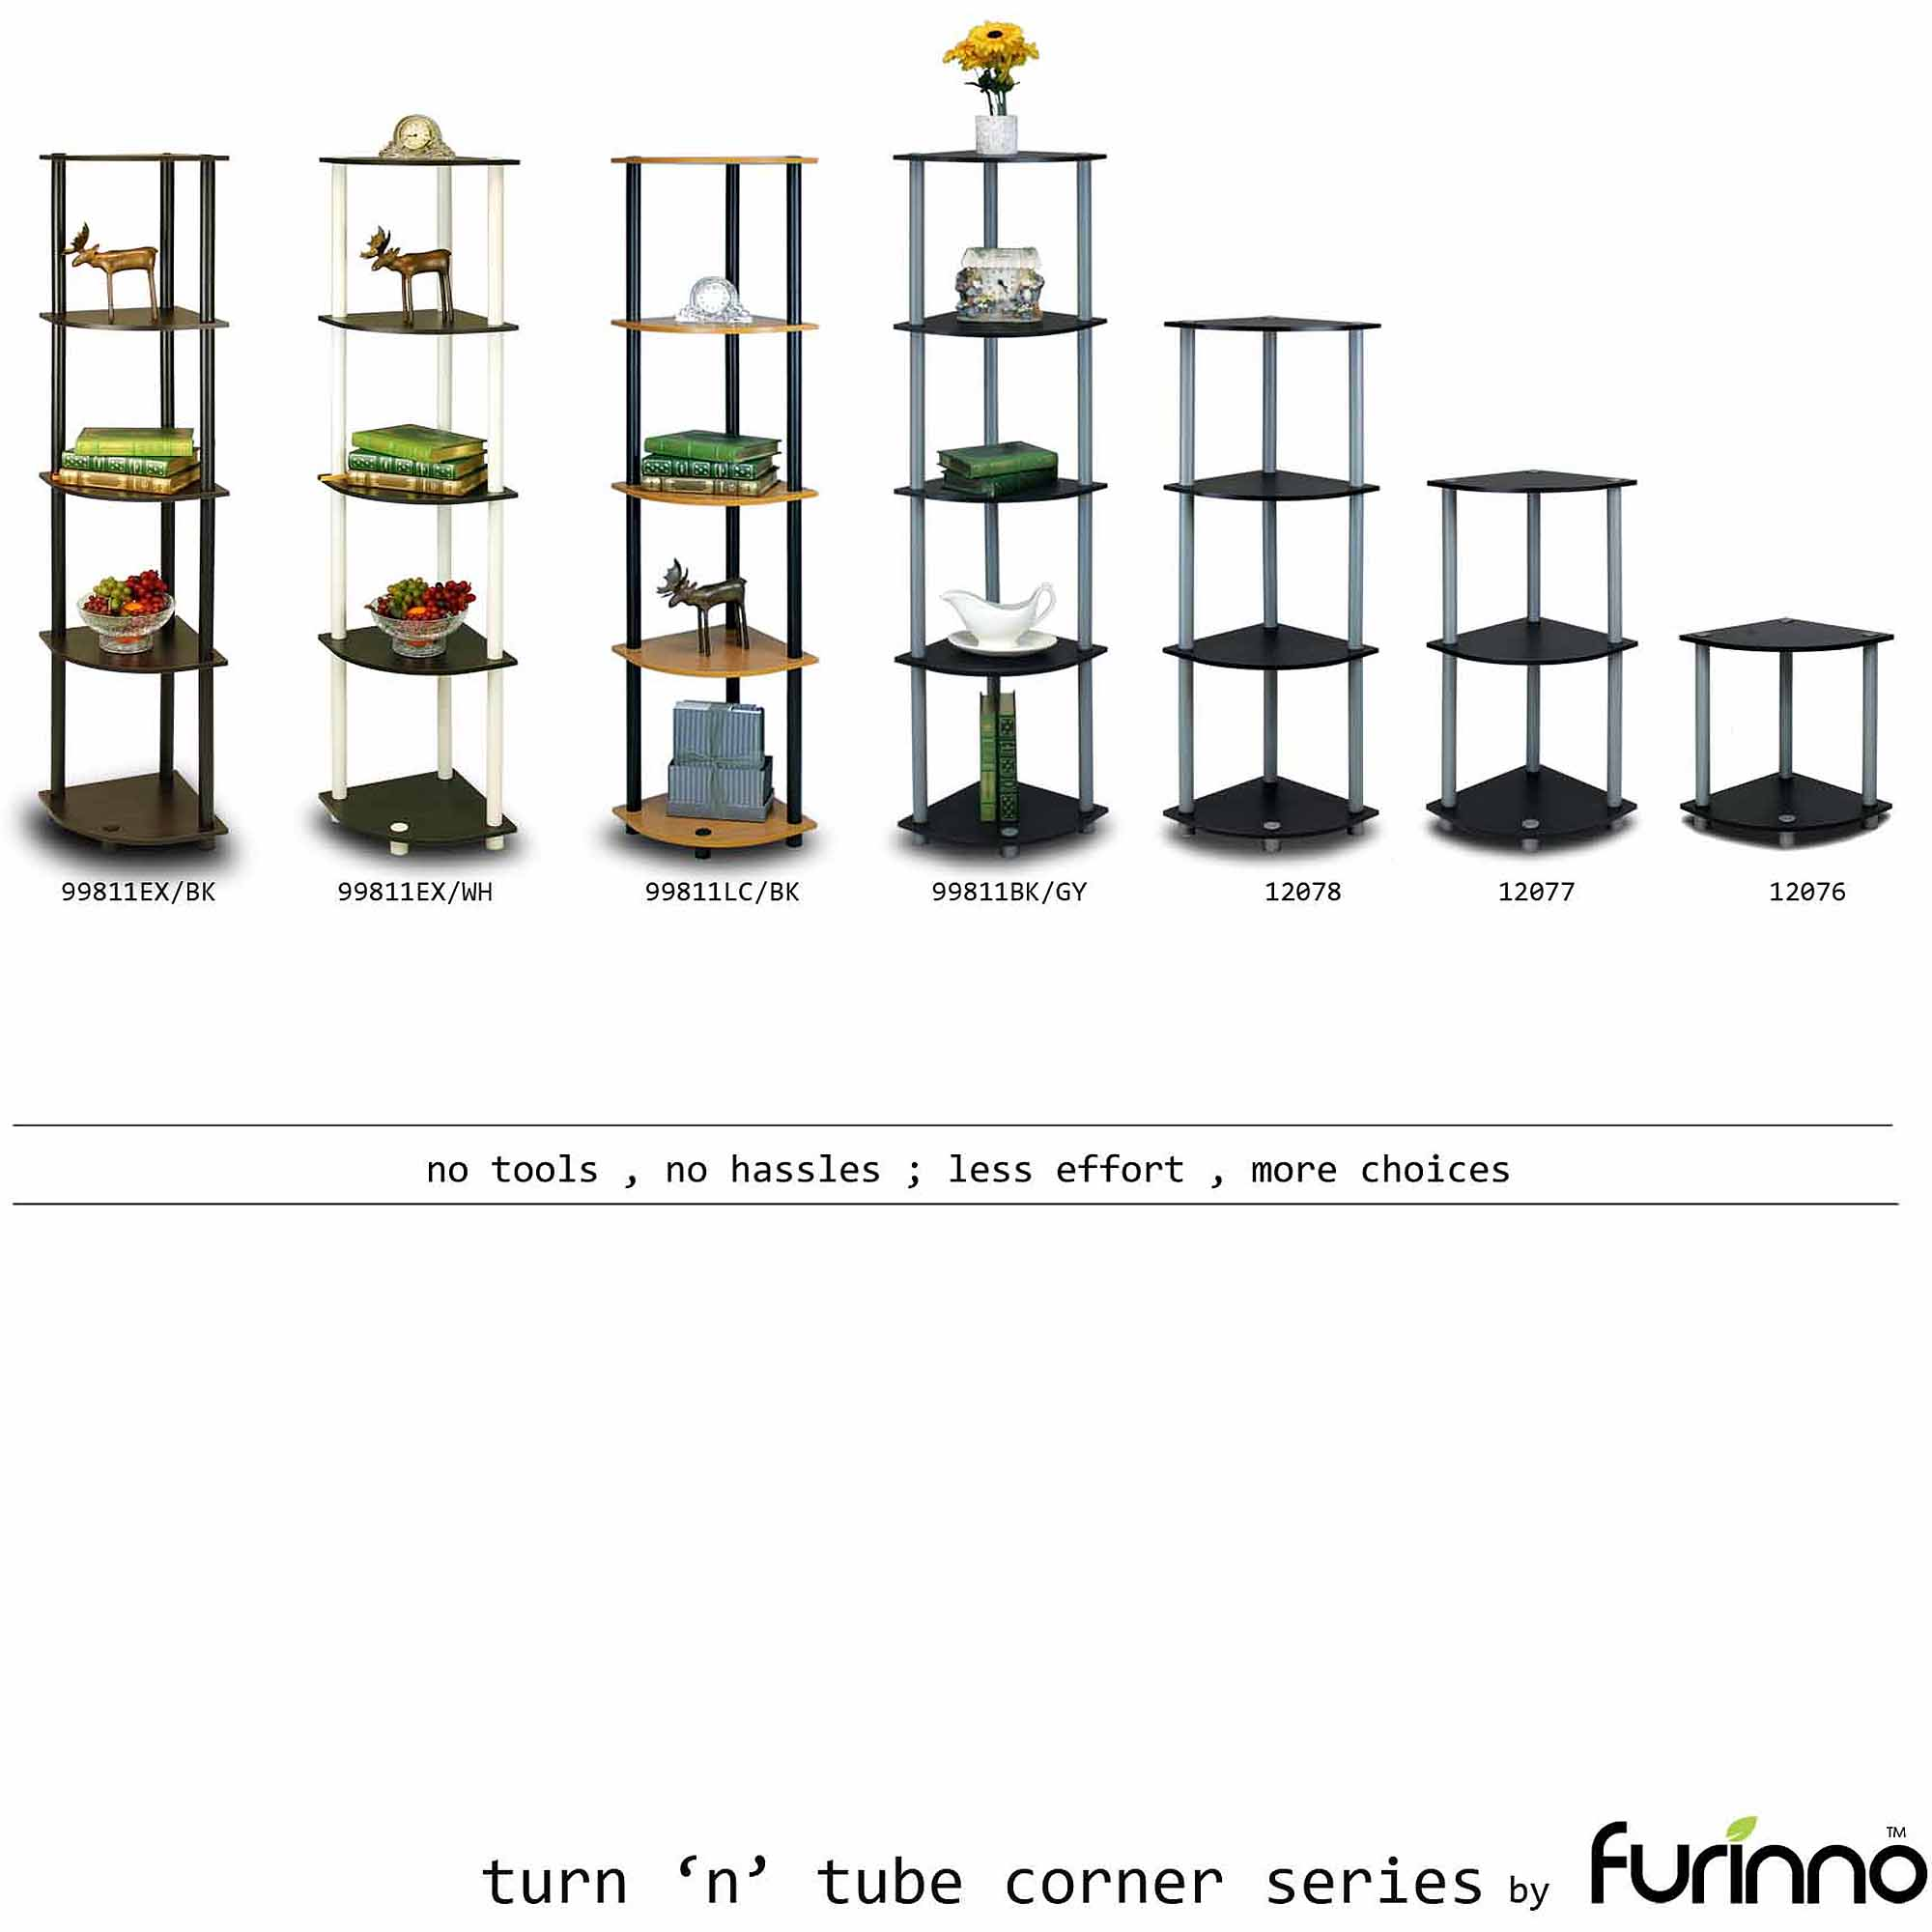 Furinno 99811 Turn-N-Tube 5-Tier Corner Display Rack Multipurpose Shelving Unit